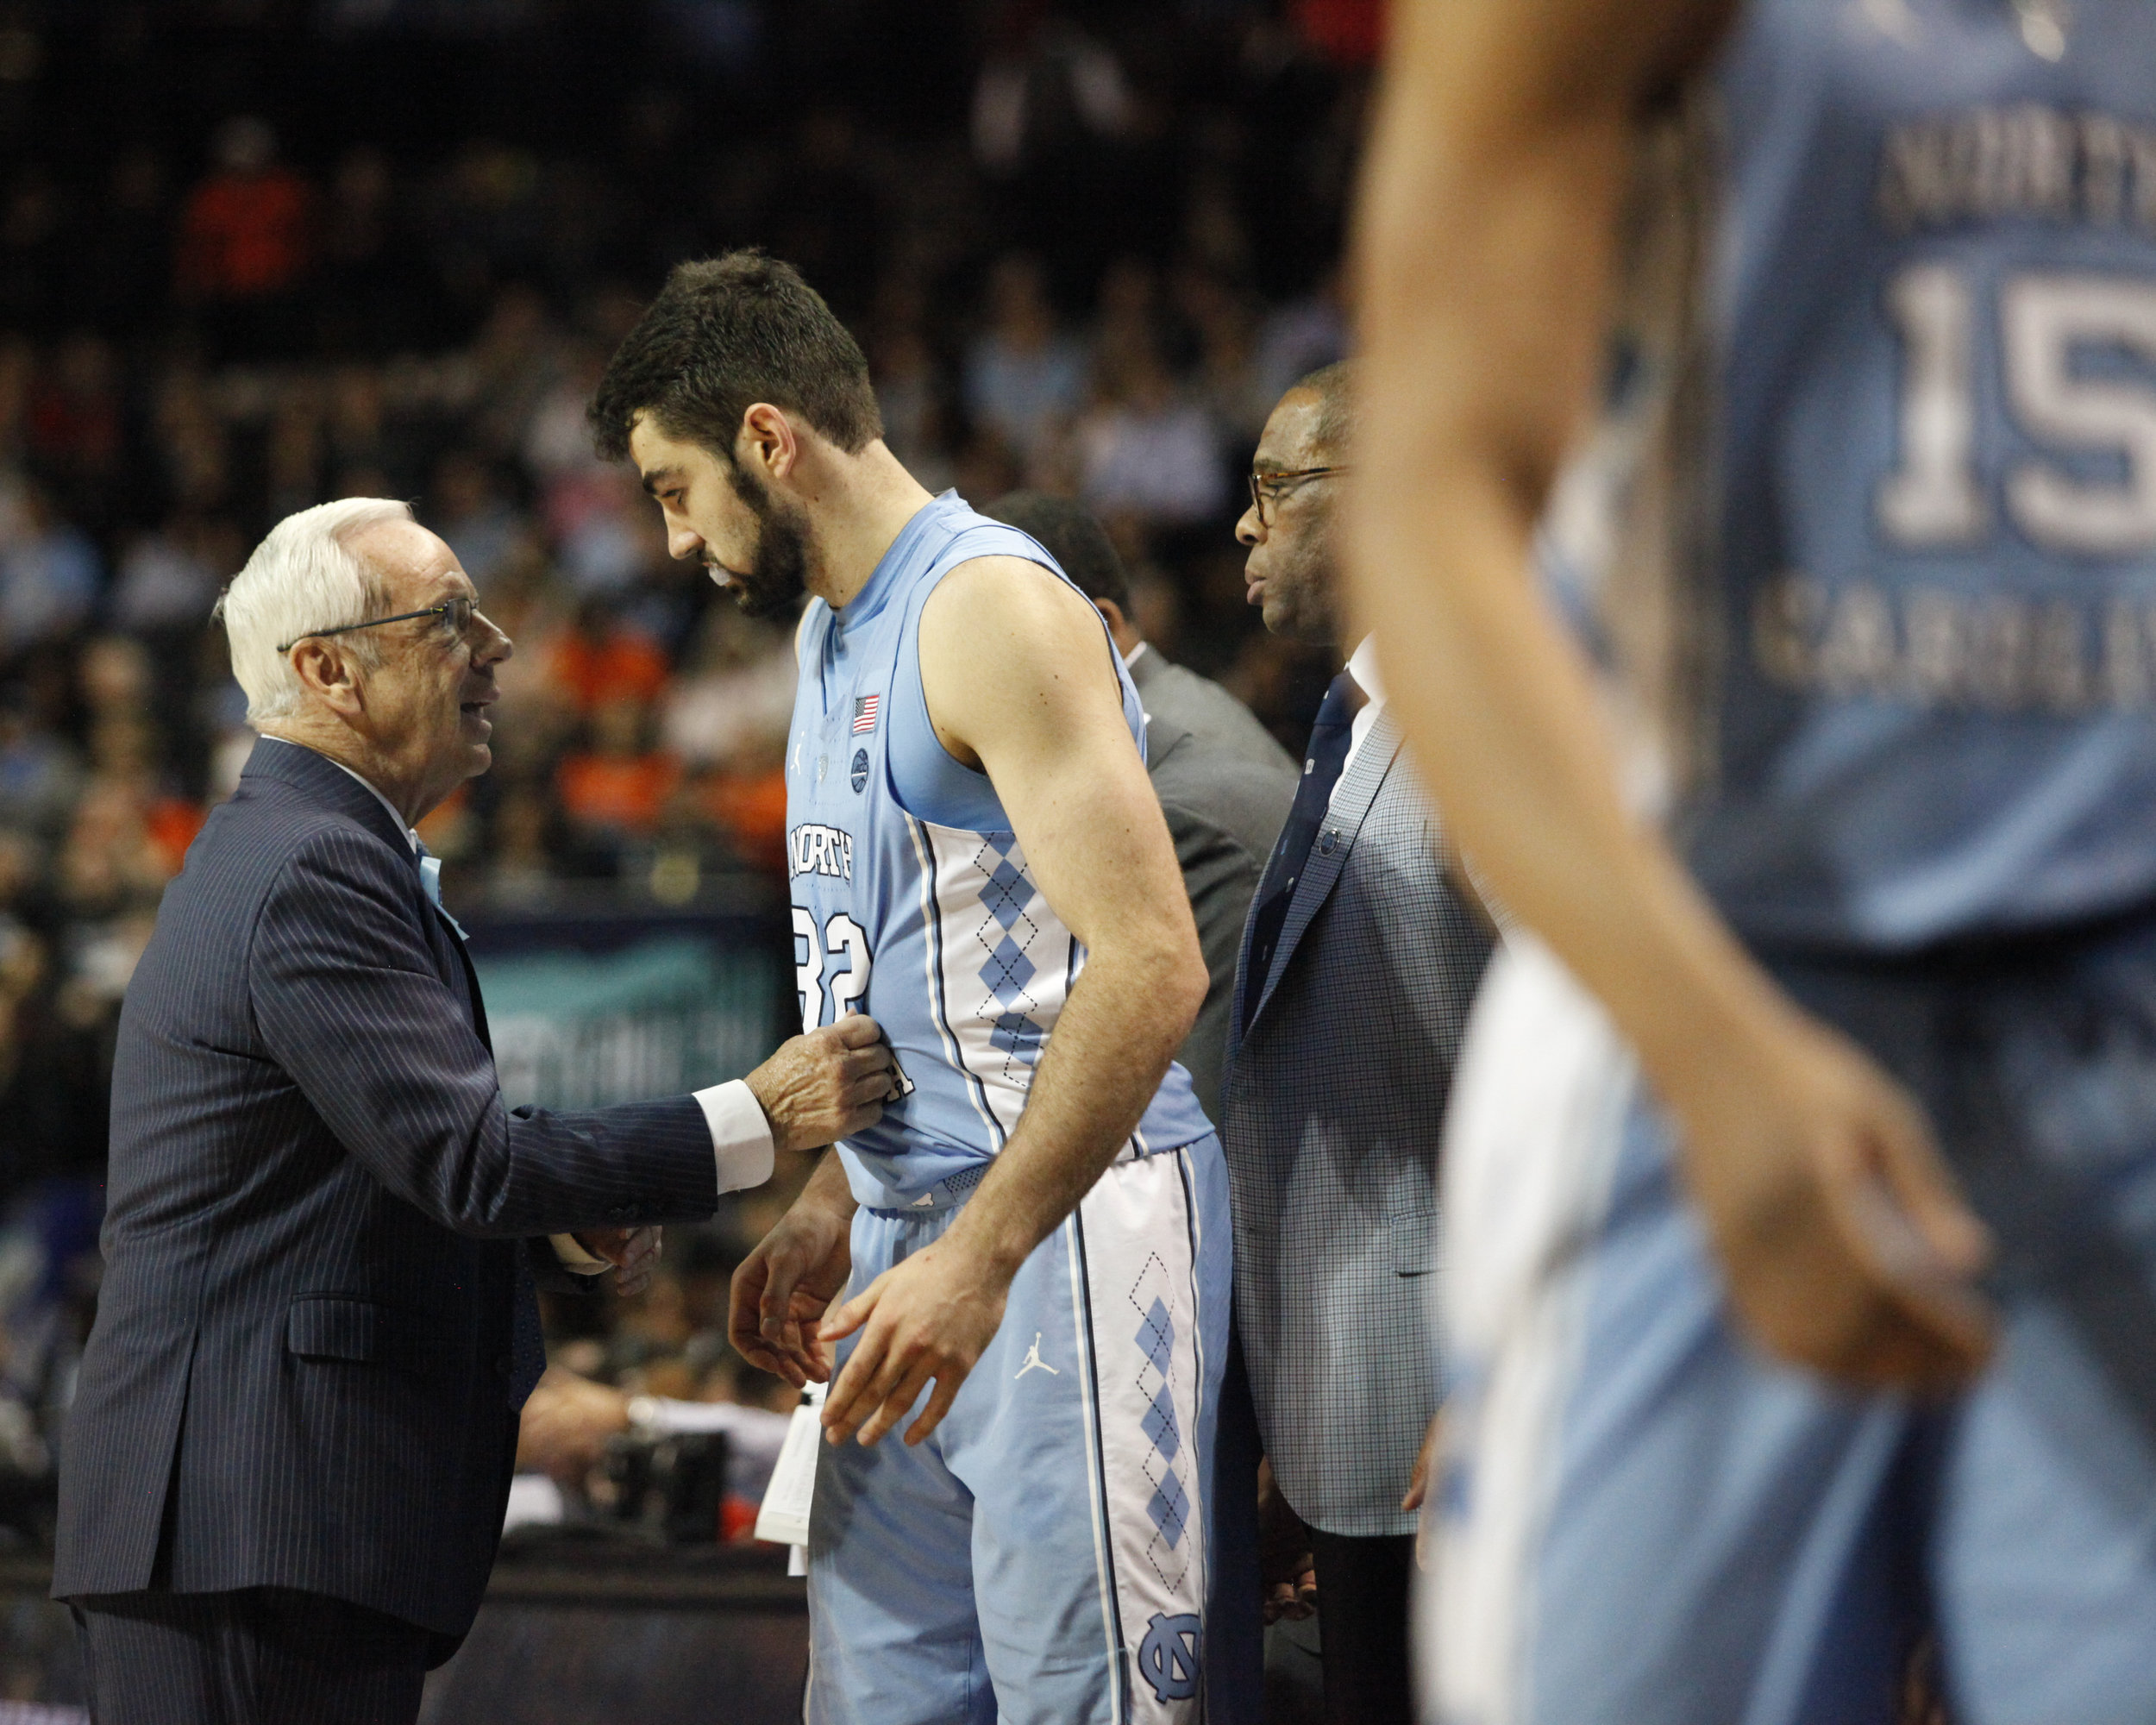 UNC head coach Roy Williams grabs Luke Maye by the jersey to give him a confidence boost during the ACC Tournament.